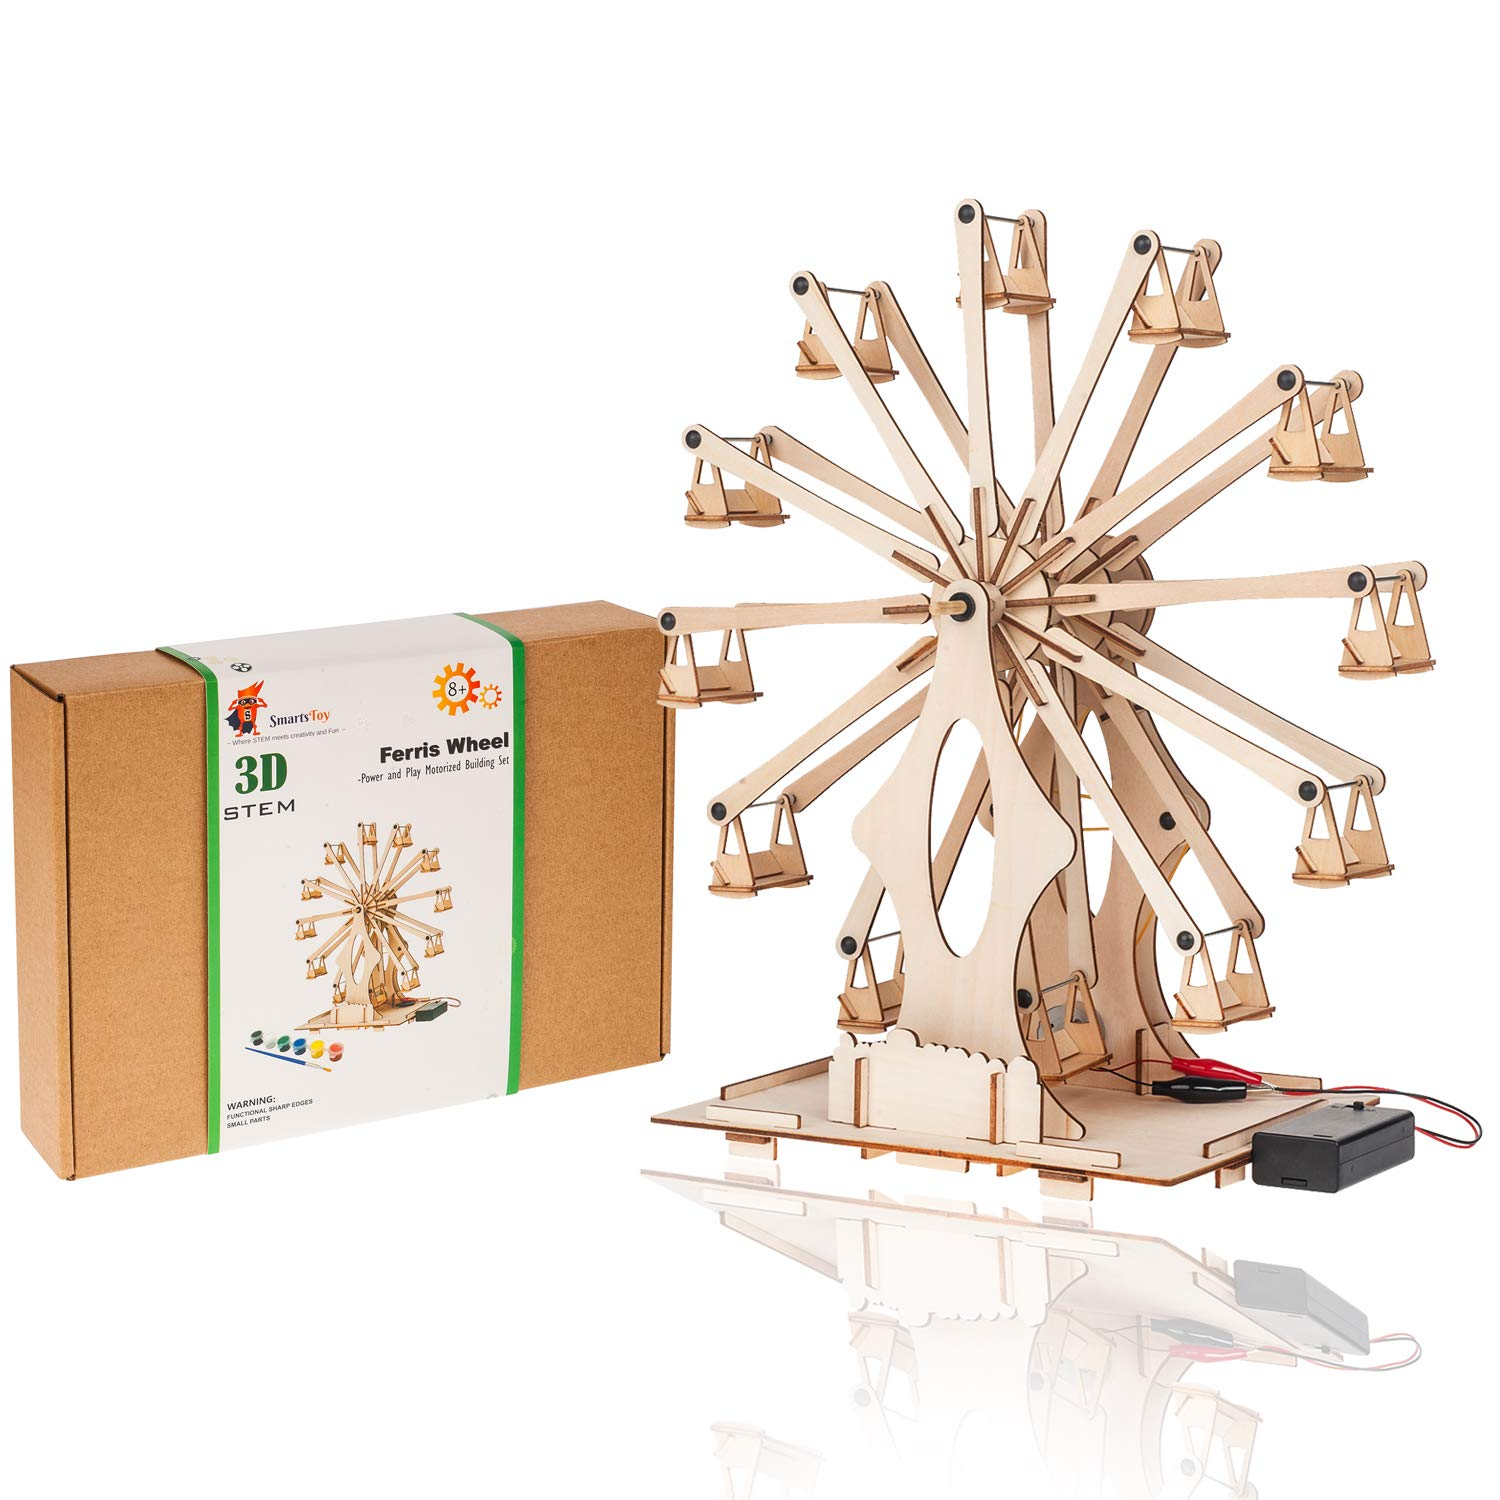 Wooden Ferris Wheel Building Kit | Educational DIY STEM Toys for Boys and Girls | 3D Working Construction Model Kits | Mechanical Assembly Toy for Kids , Teens & Adults